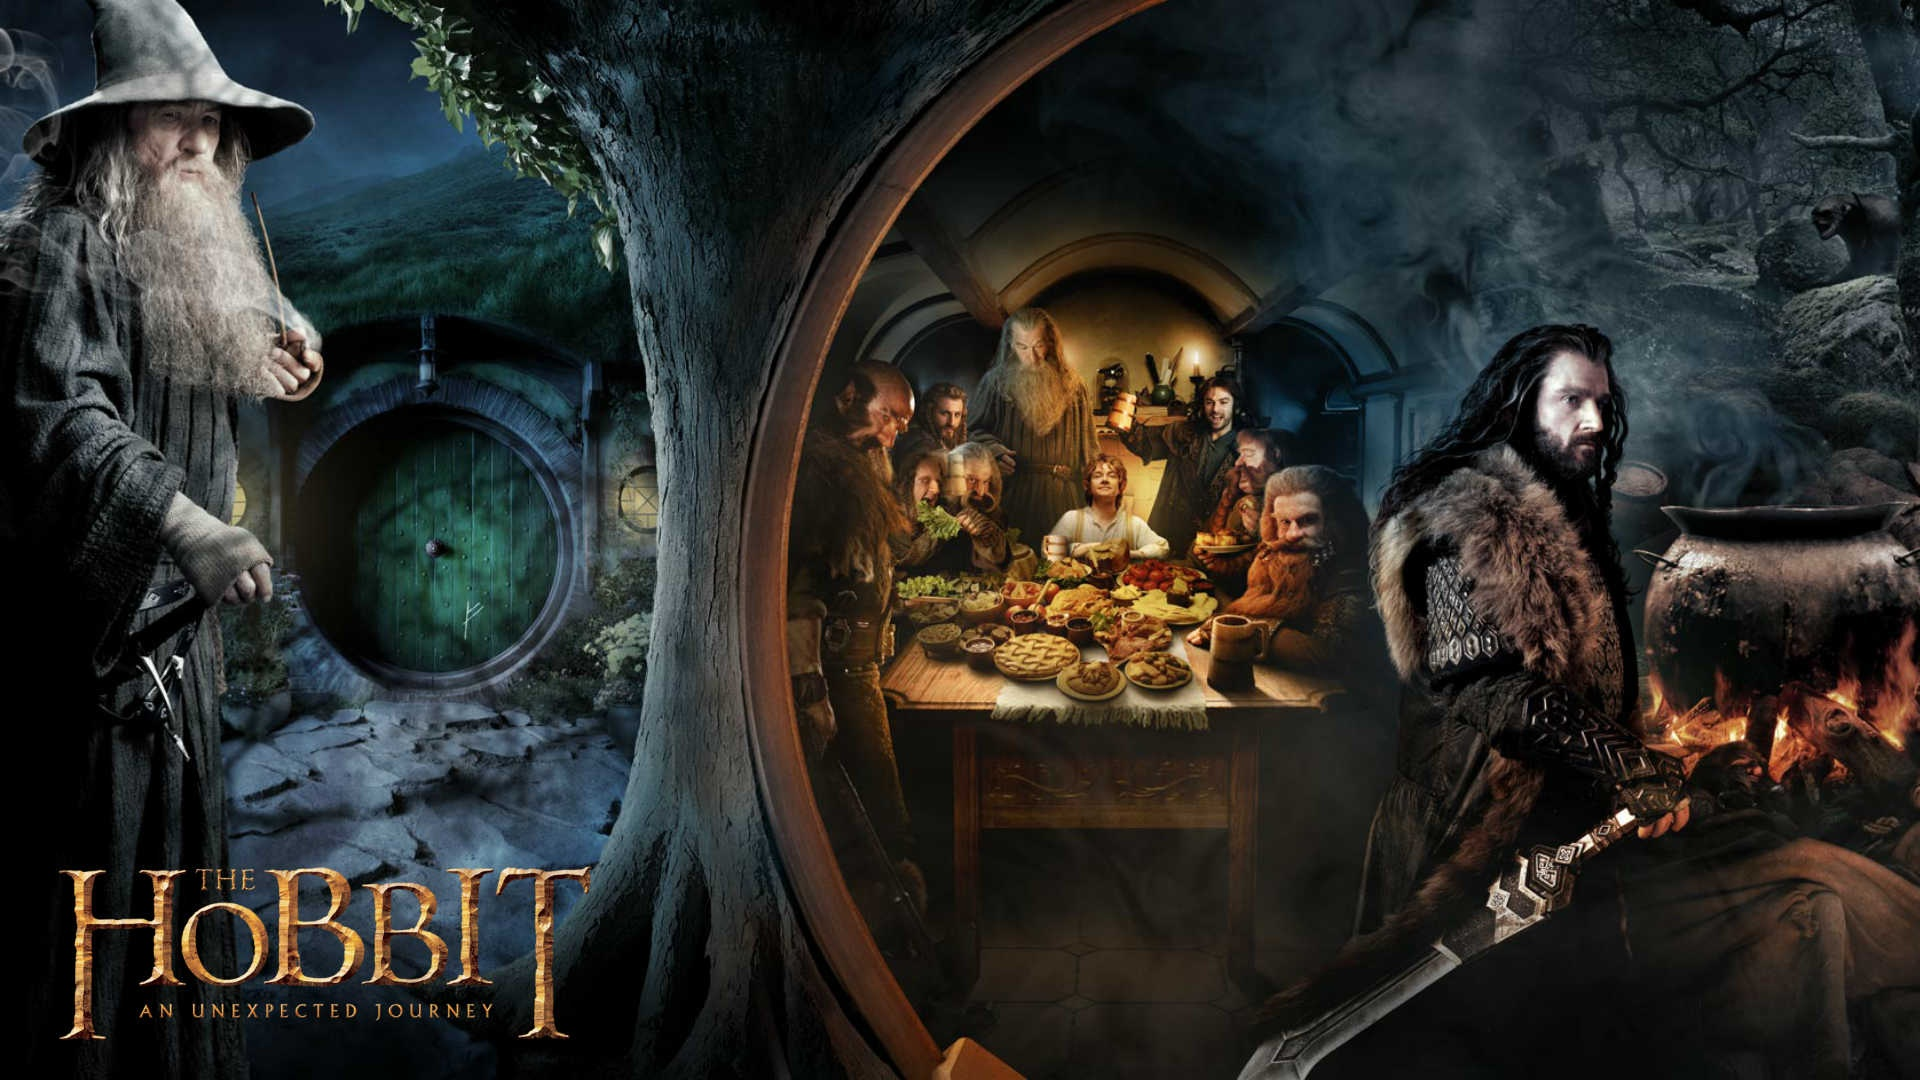 The Hobbit Wallpaper   The Hobbit Wallpaper 33042233 1920x1080